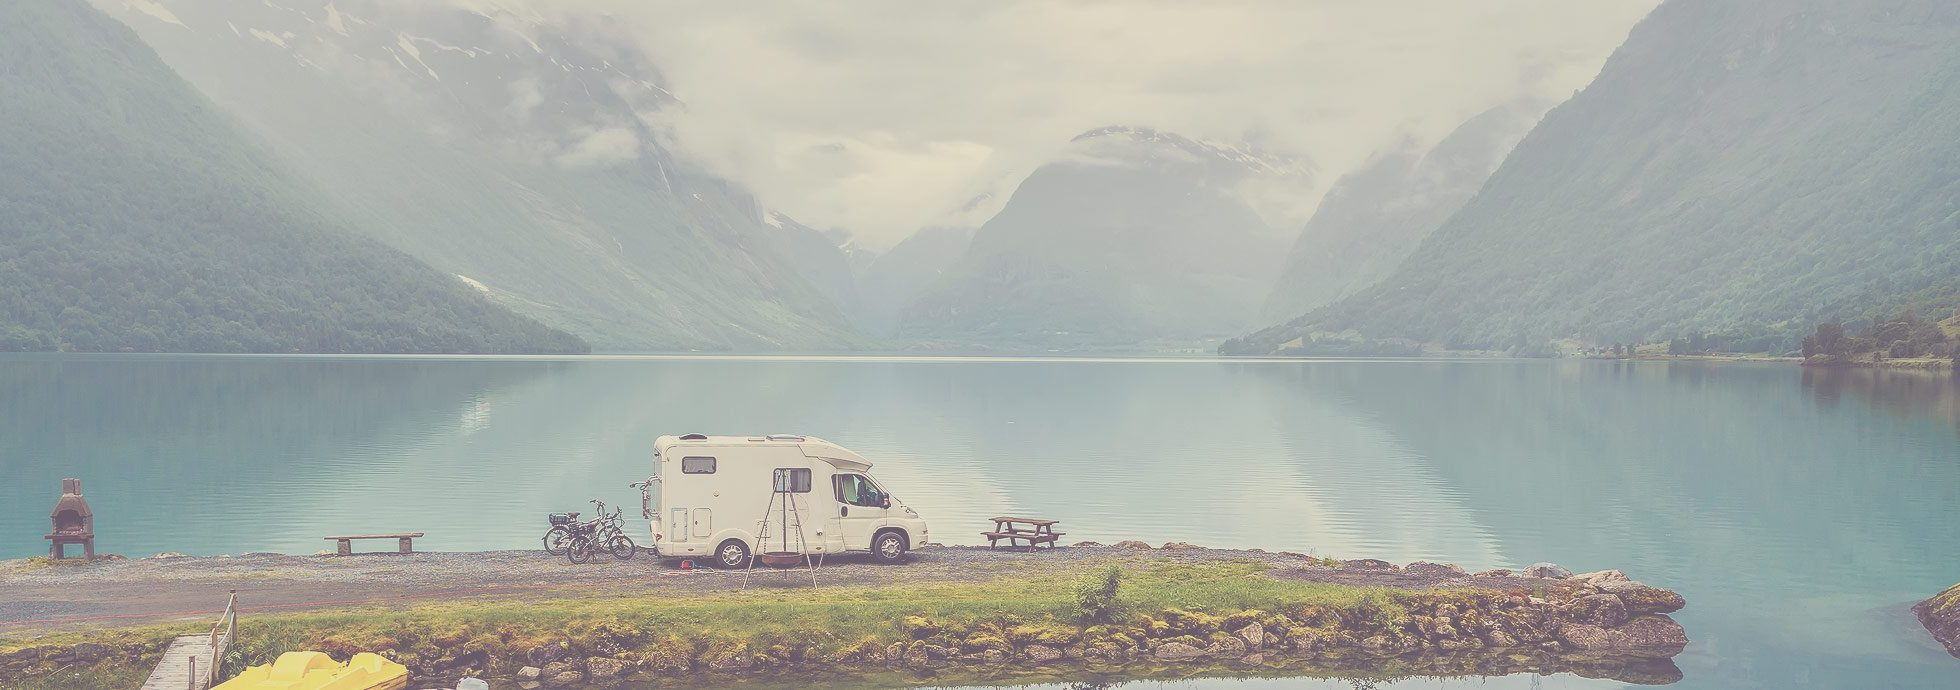 Hire a motorhome and hit the road. Travel another way.